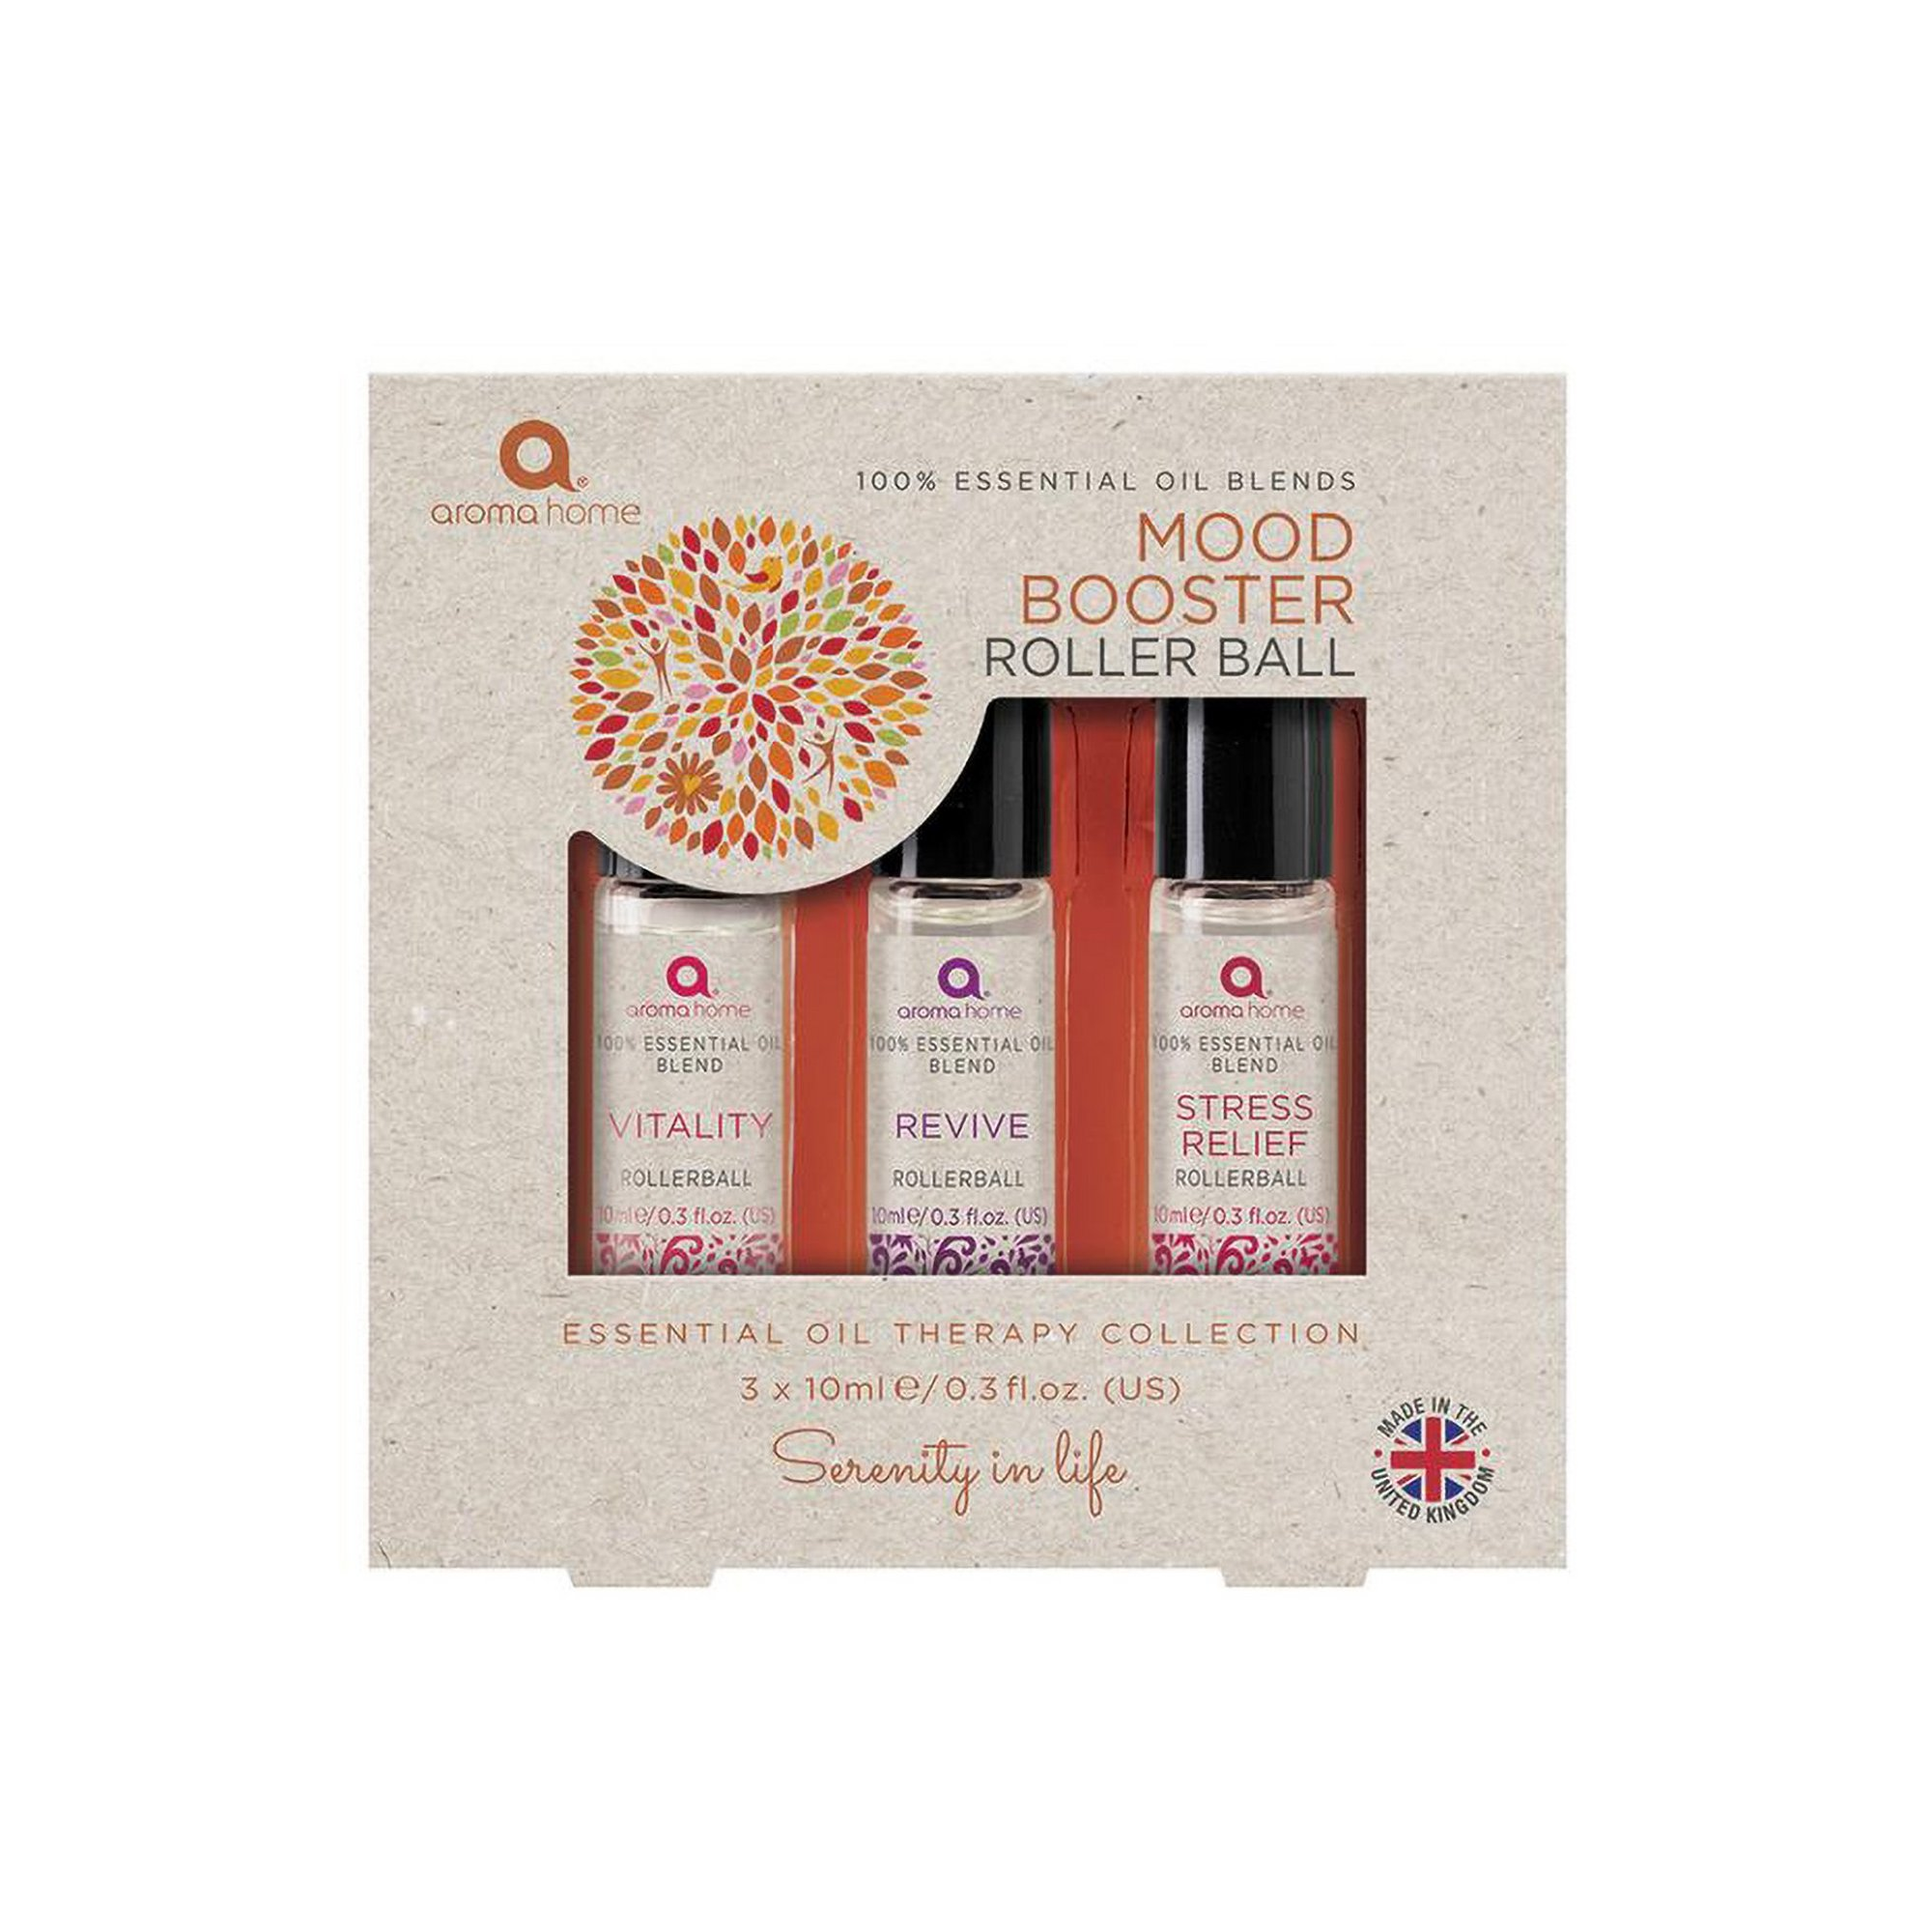 Image of Aroma Home Essentials Pack of 3 Mood Booster Rollerball Blend Oils